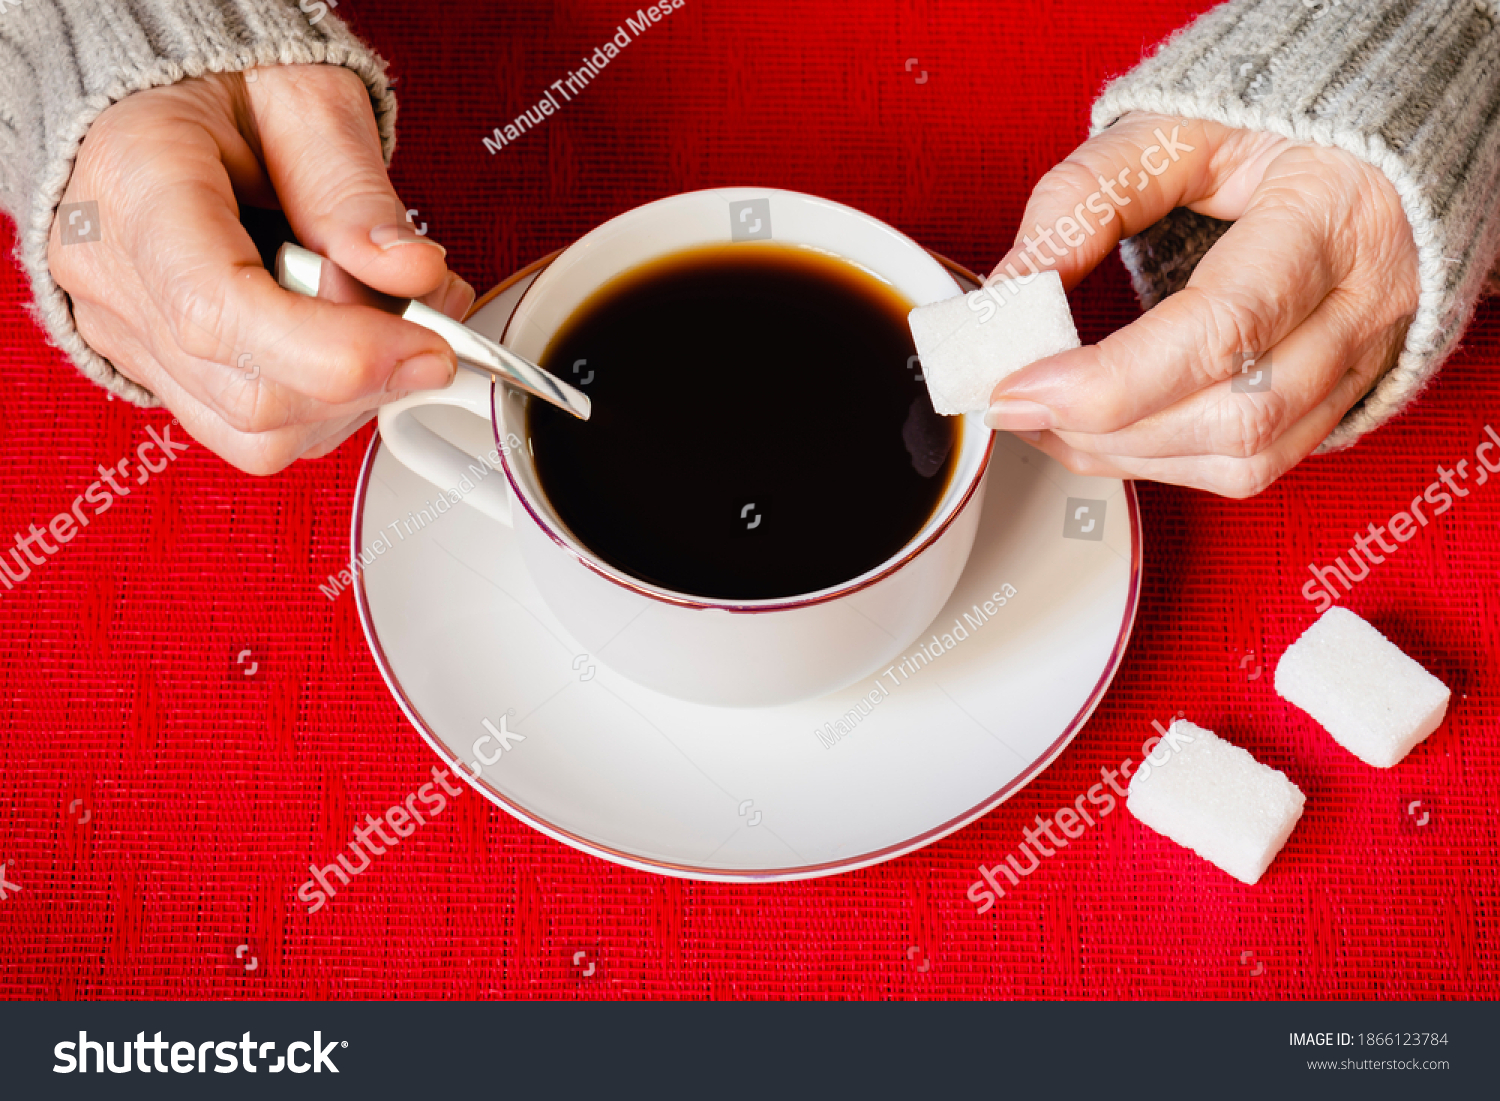 A hand putting a sugar cube in a cup of coffee, on a red tablecloth